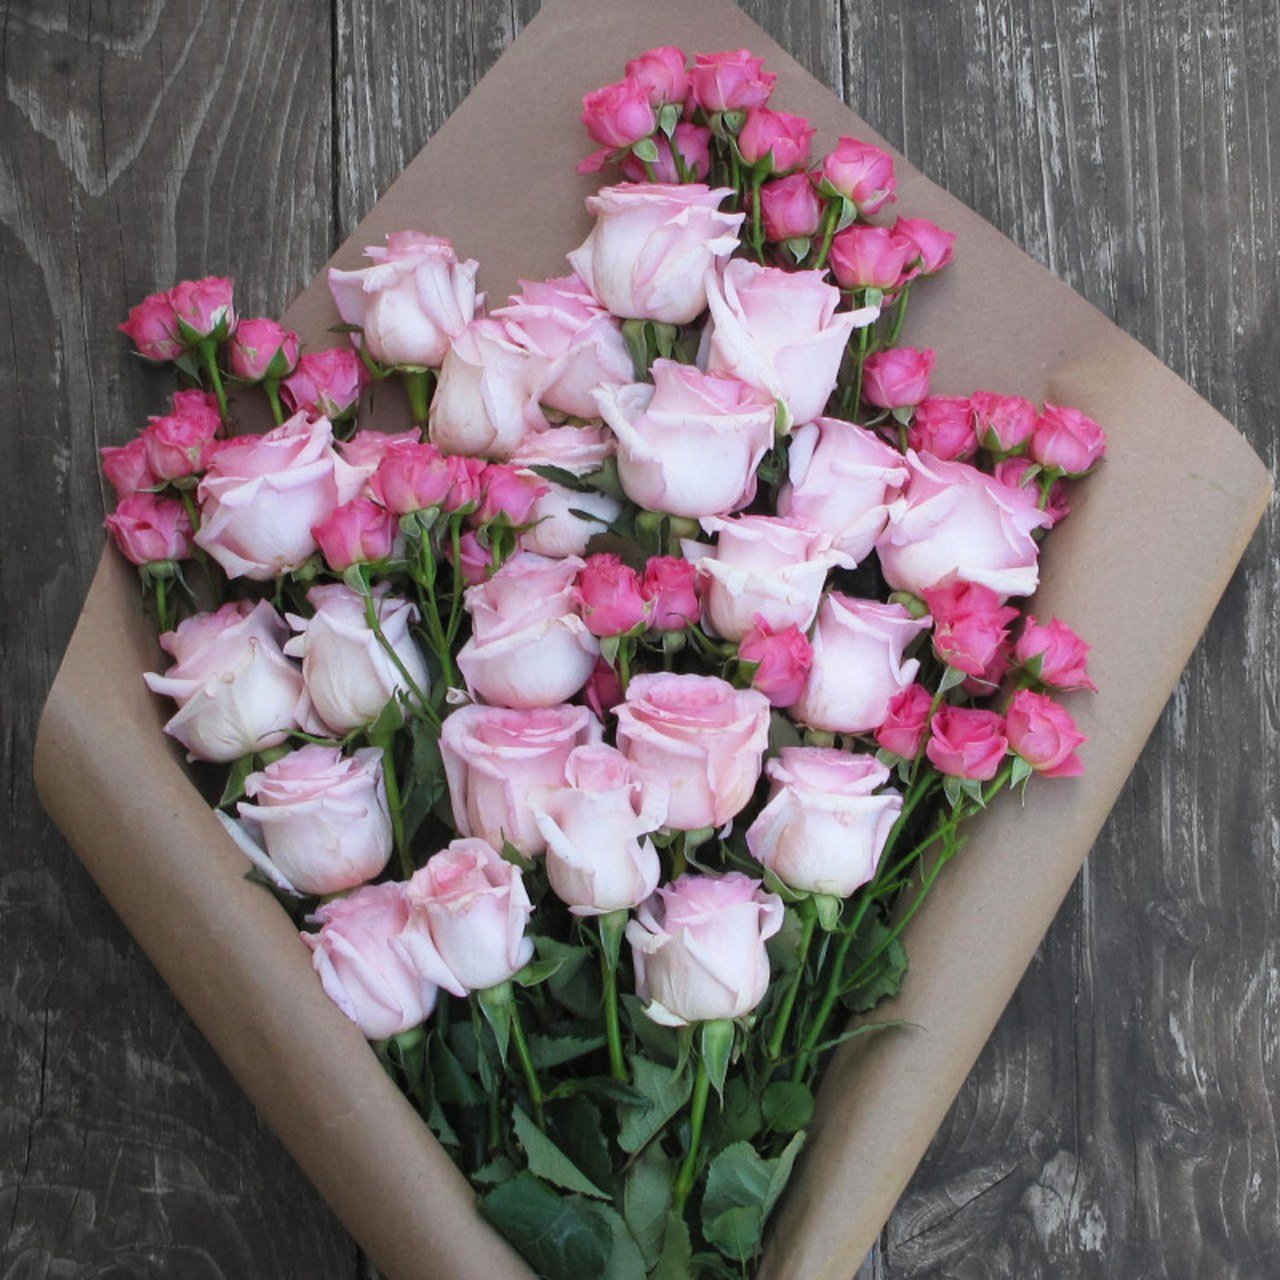 Best online flower delivery service same day flower delivery by httpsmediaamourphotos5695de4cd9dab9ff41b4a6acmasterw1280climithome 2014 02 2 sending flowers online flower delivery 0221 maing izmirmasajfo